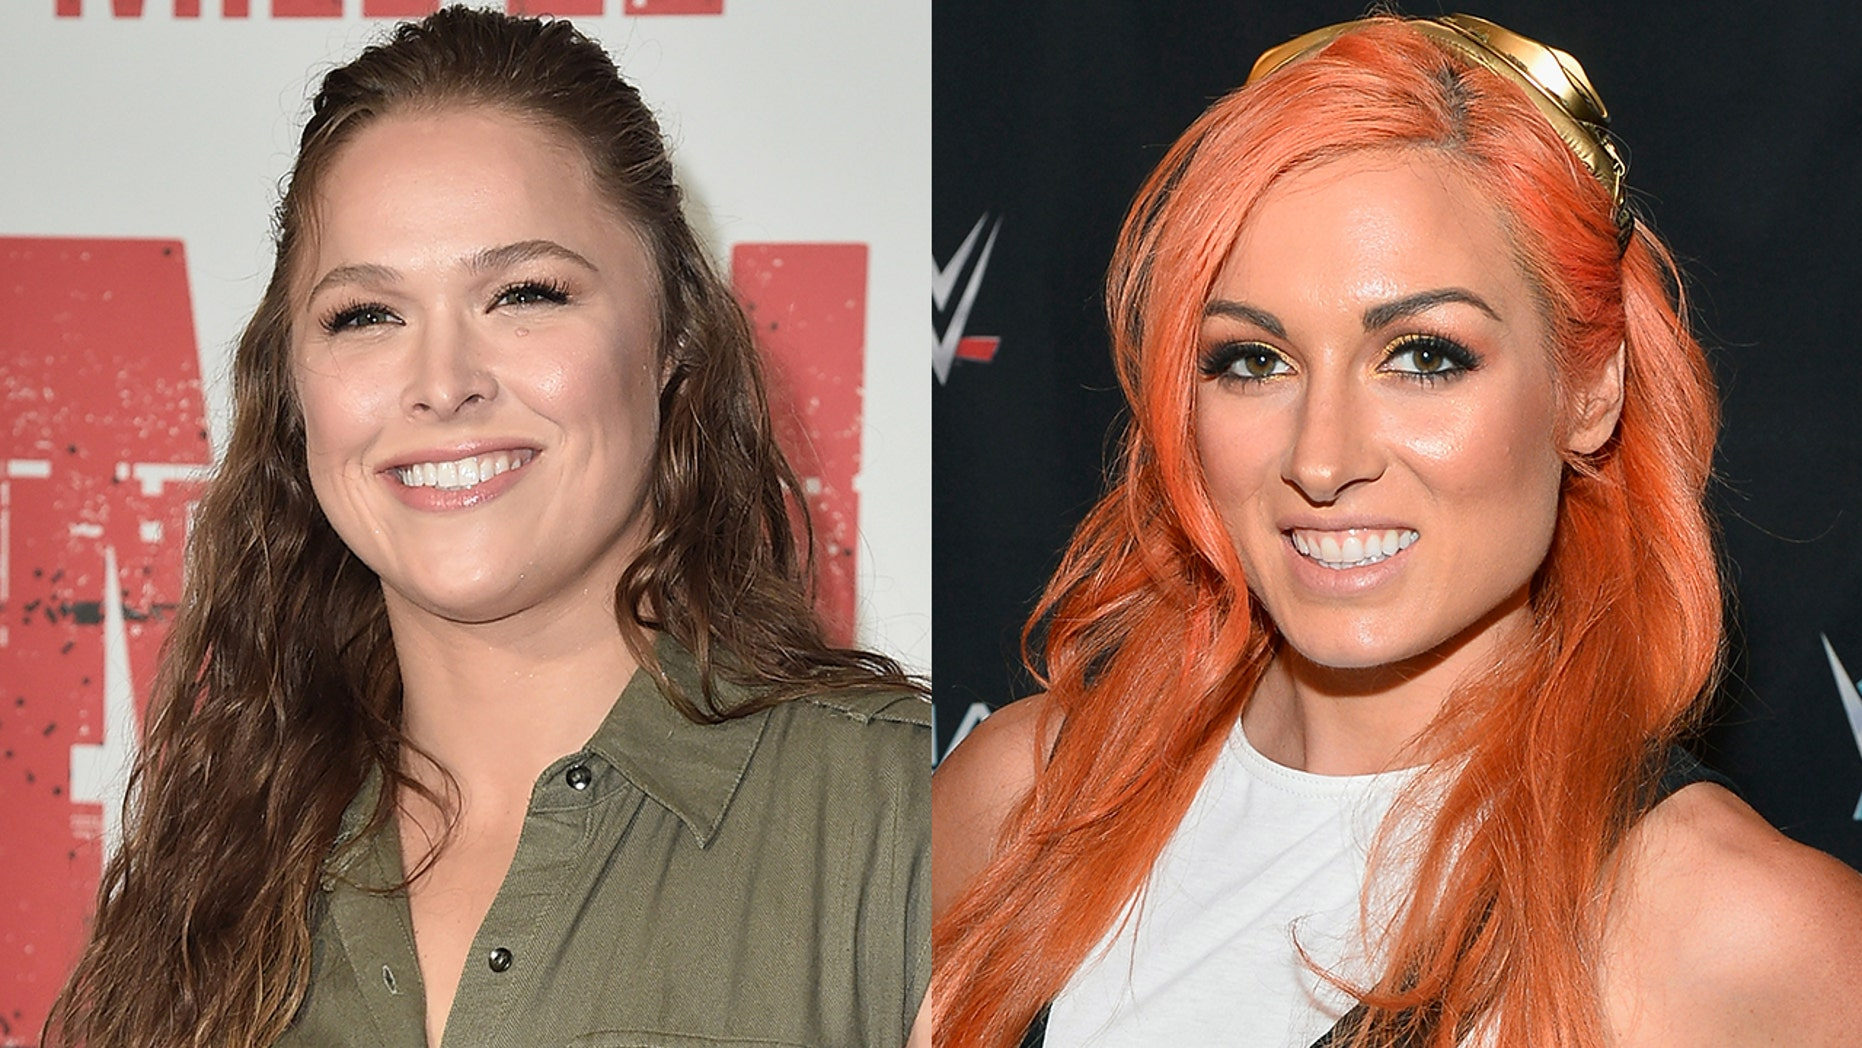 Ronda Rousey exchanged heated words with WWE rival Becky Lynch.